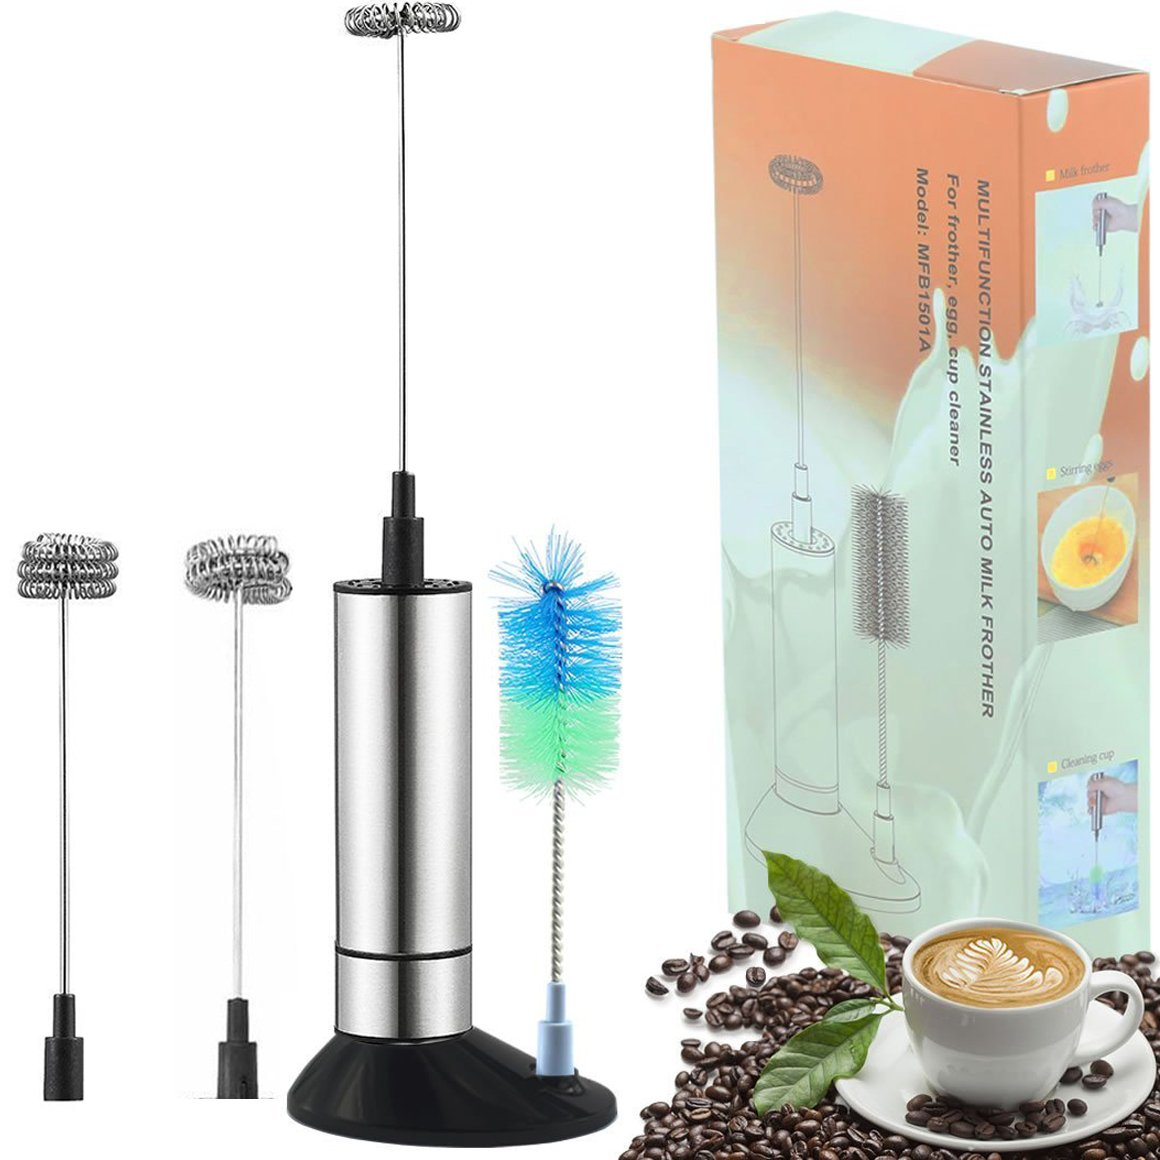 Yopin Handheld Milk Frother, Battery Operated Electric Foam Maker,Stainless Steel Whisk for Coffee, Latte, Cappuccino with Stand 3 Whisks -Portable Electric Durable Drink Mixer